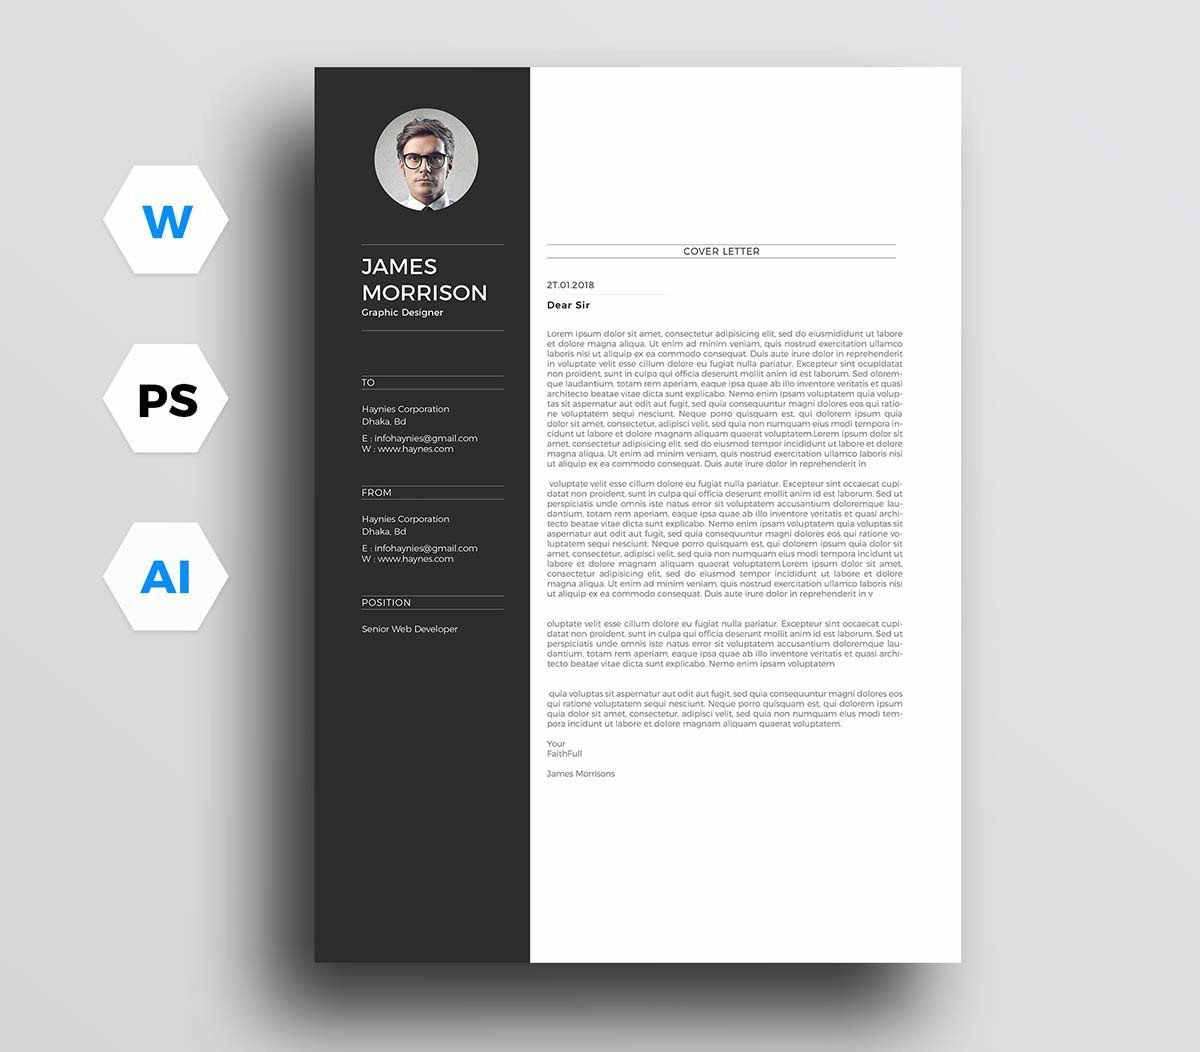 005 Striking Free Printable Cover Letter Template High Def  Templates Resume Fax Sheet WordFull